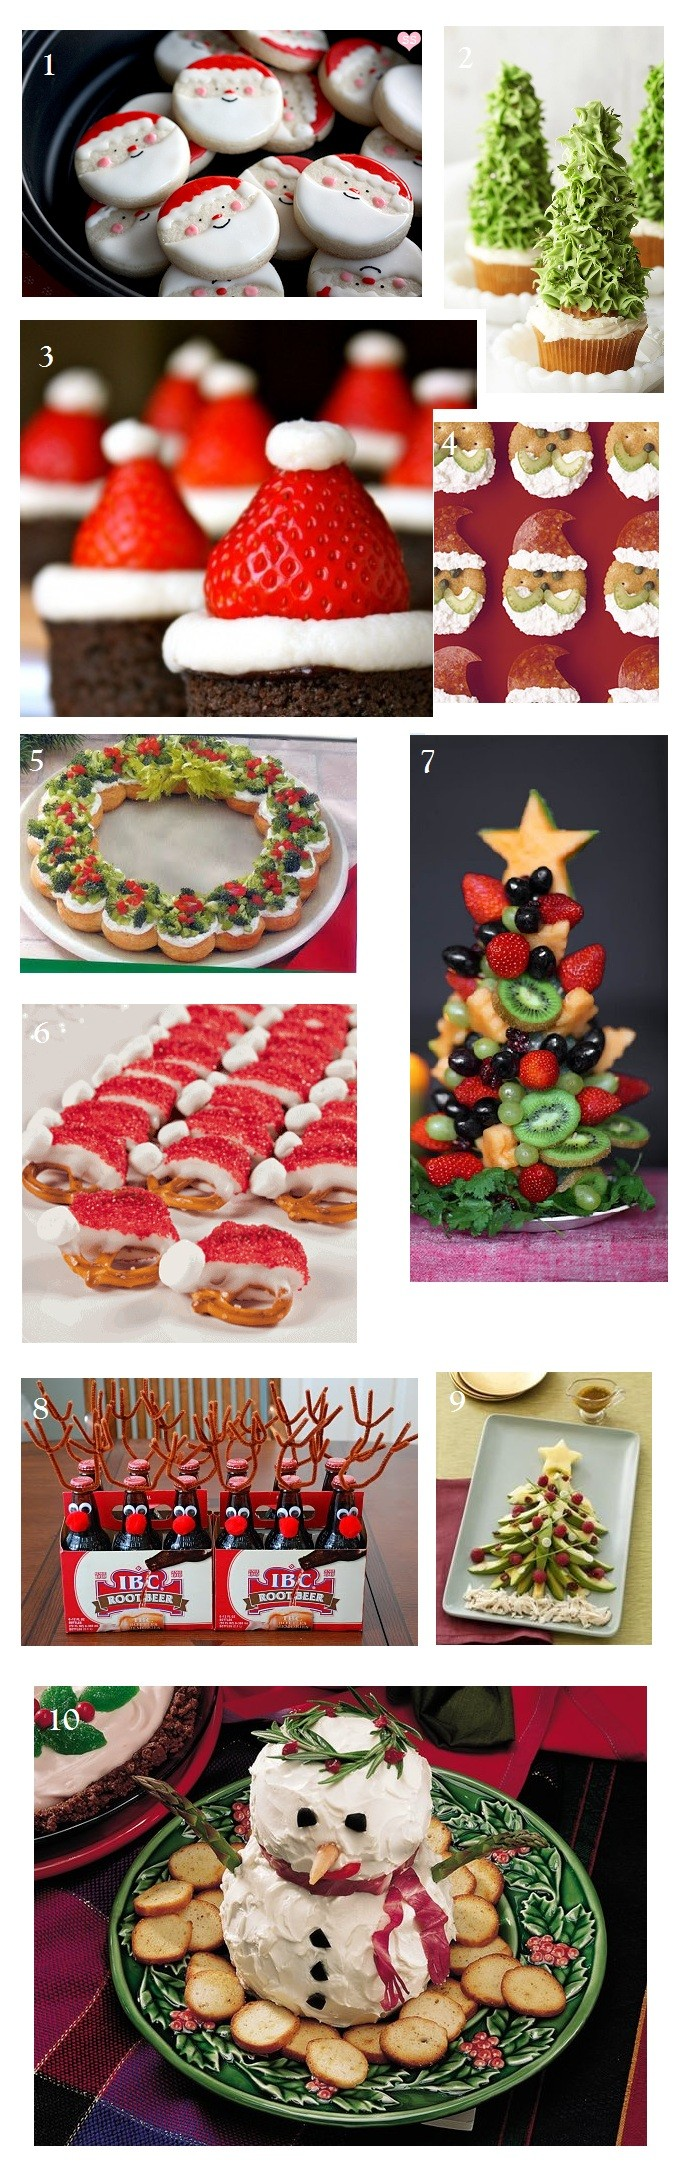 10 Awesome Christmas Party And Holiday Food Ideas Recipes